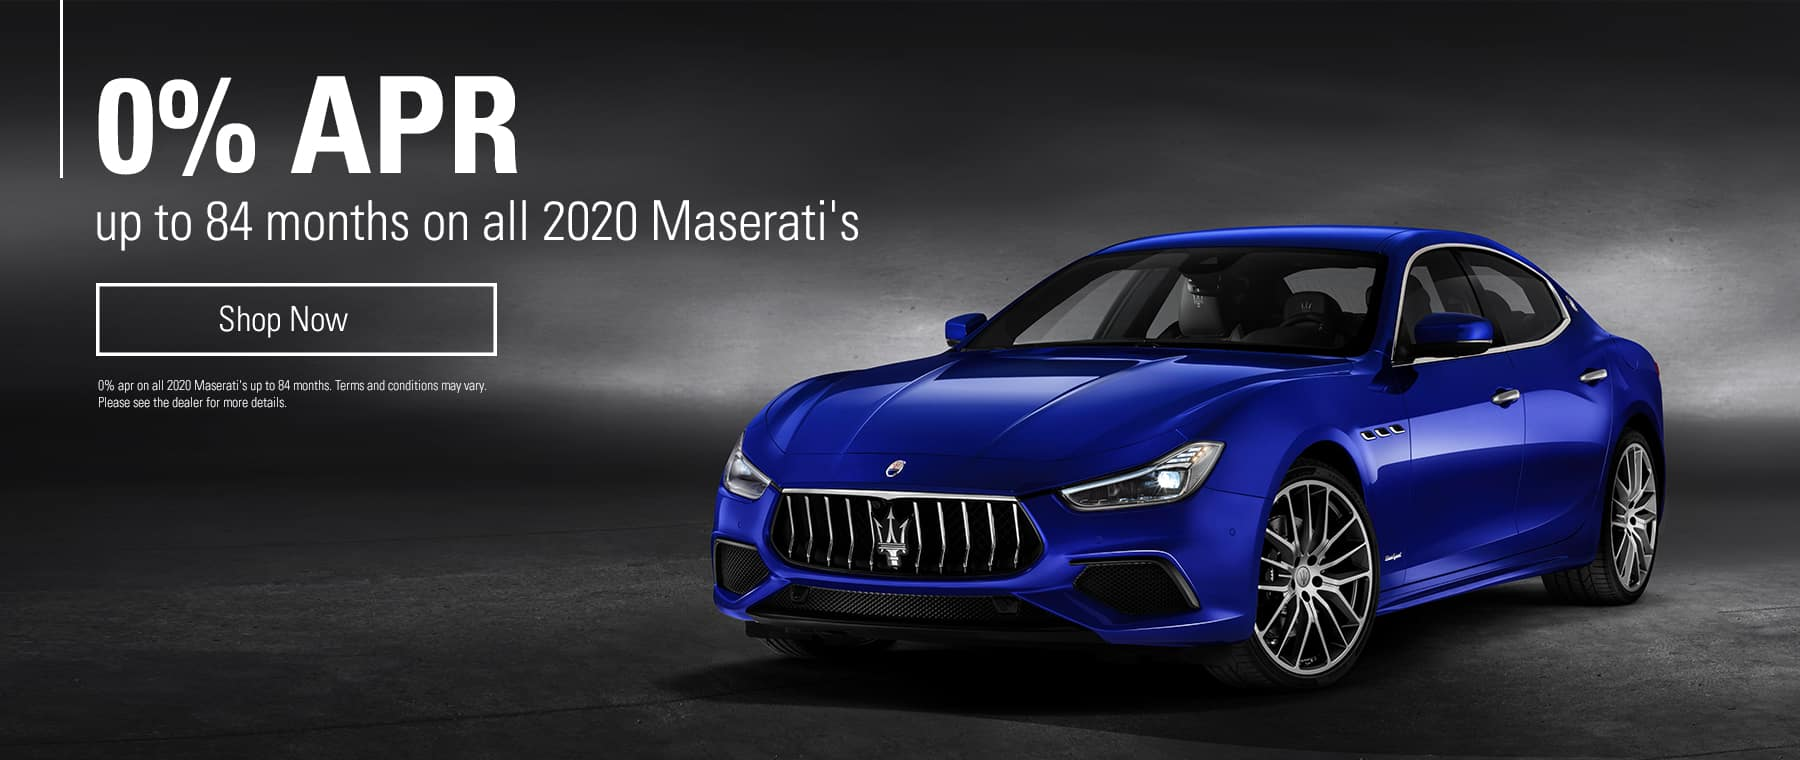 0% up to 84 months on all 2020 Maserati's